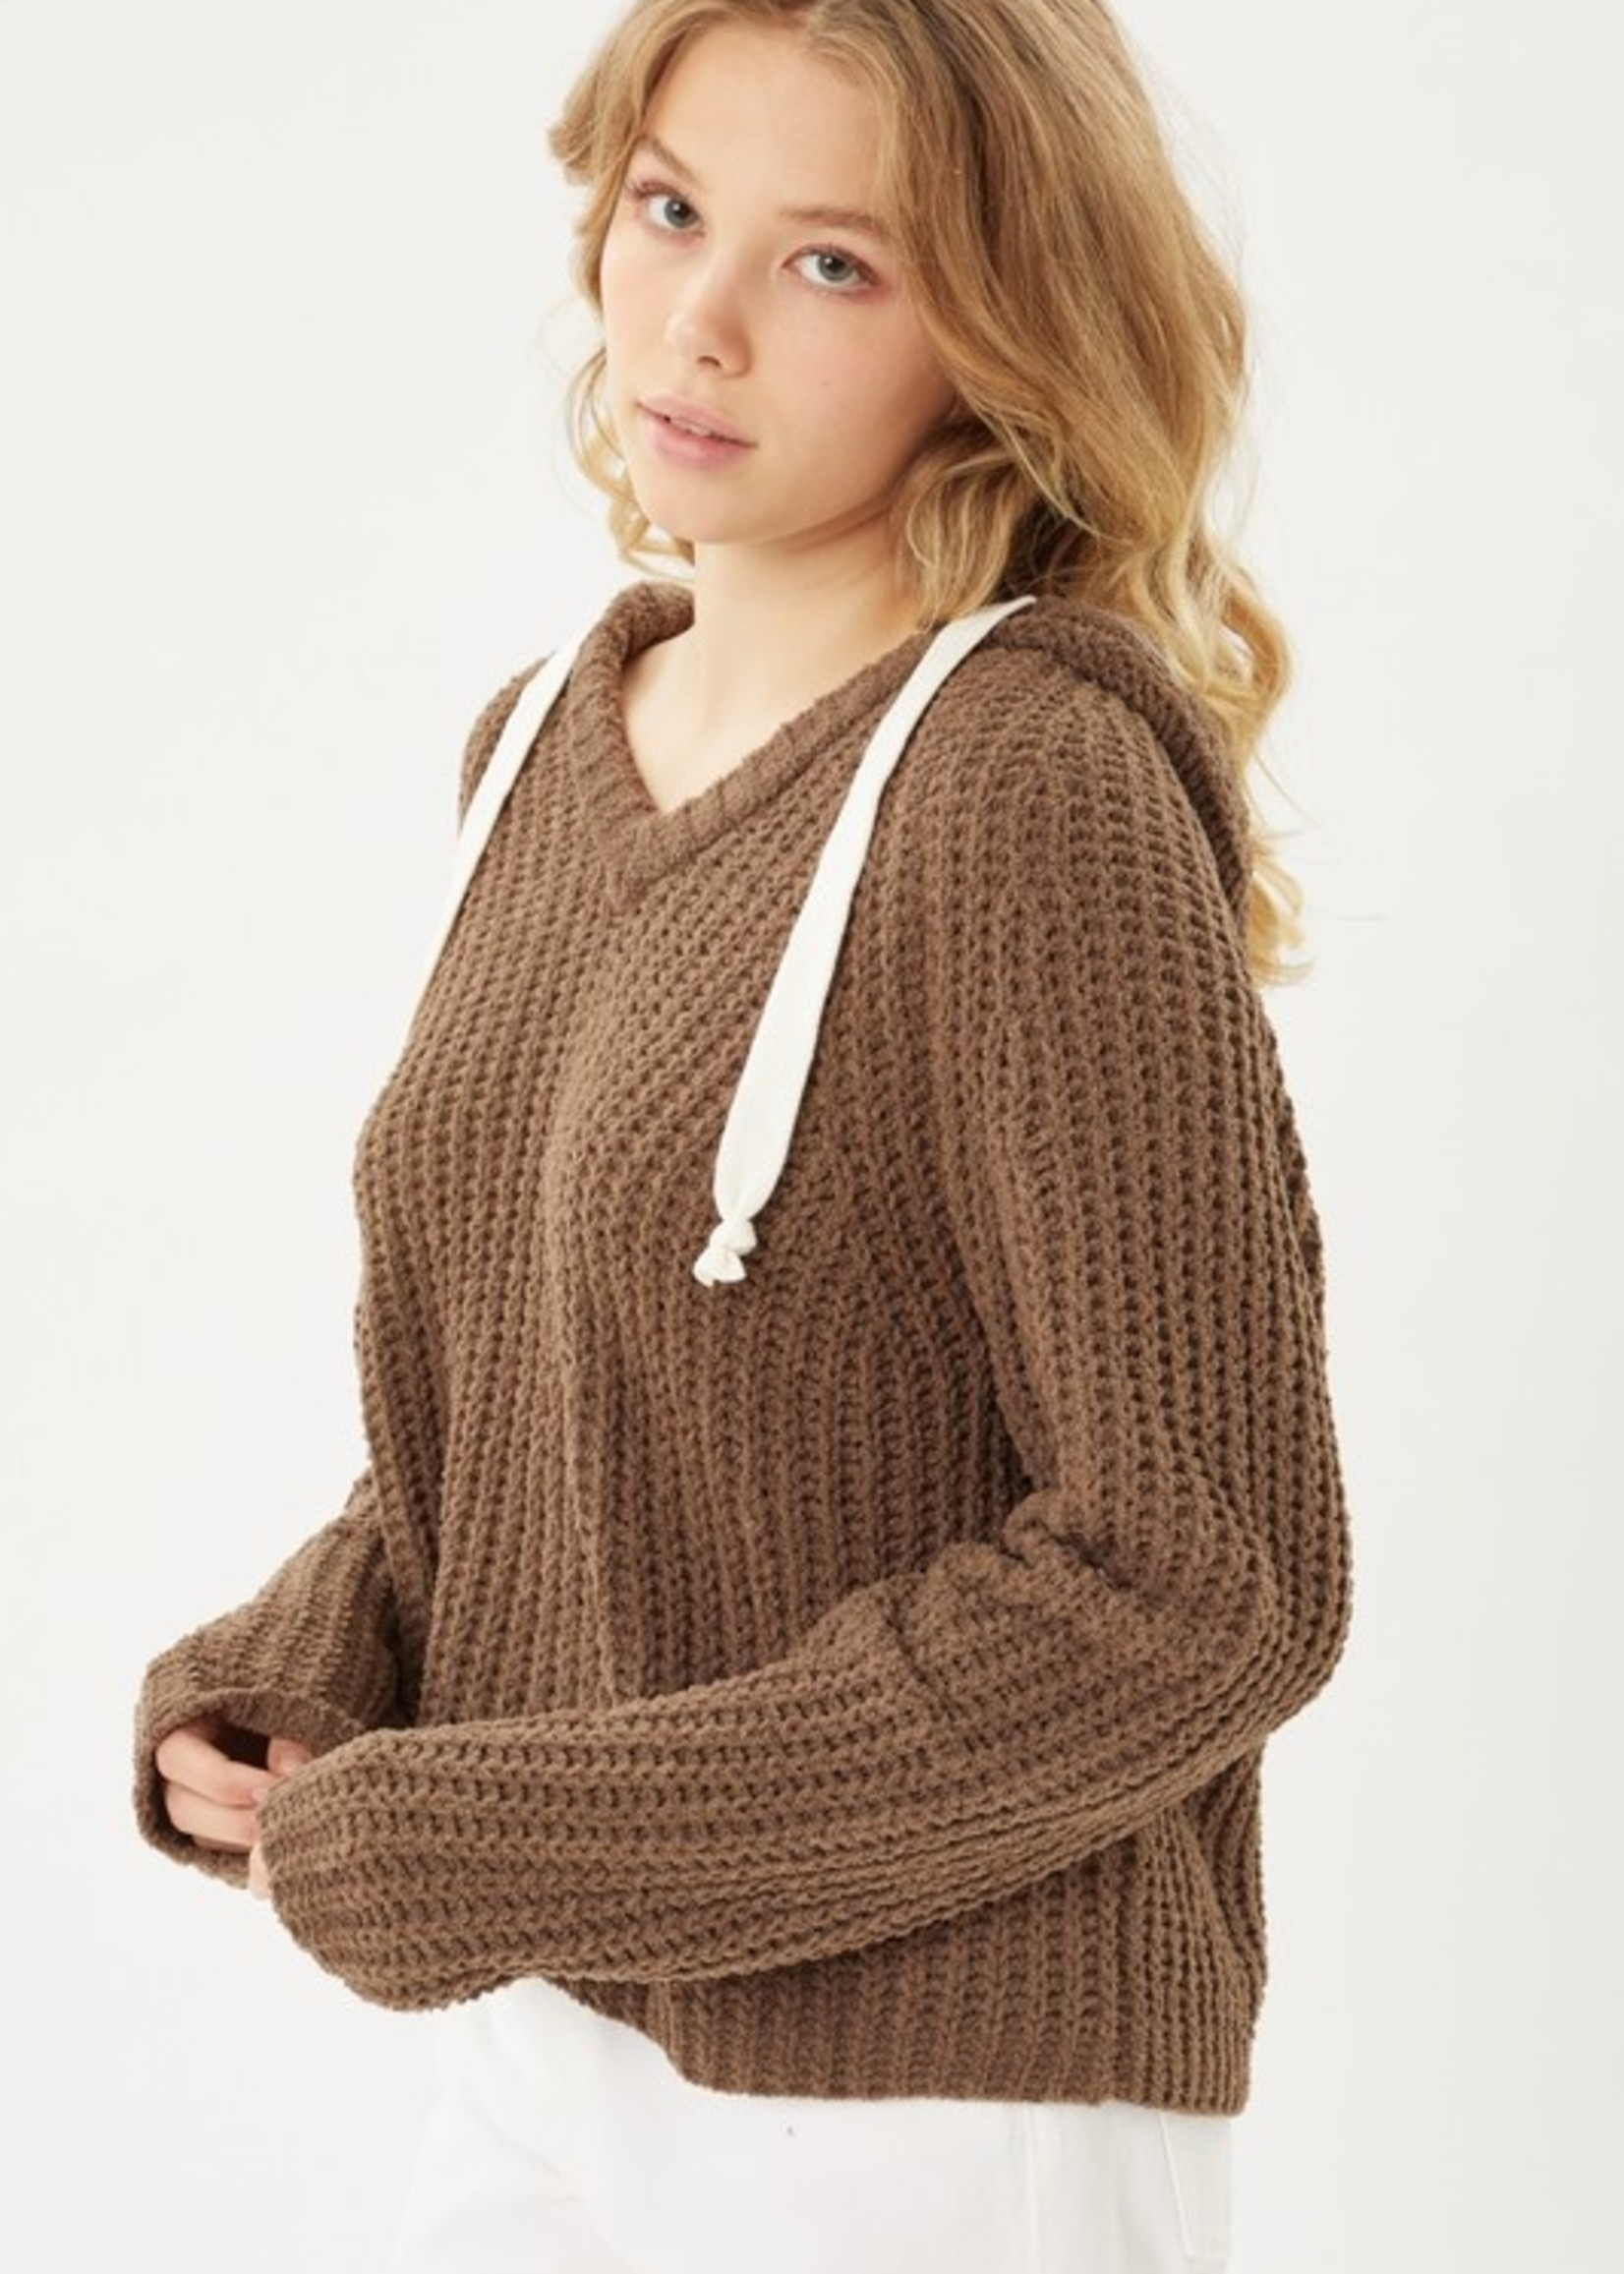 Pullover hoodie sweater 2 colors